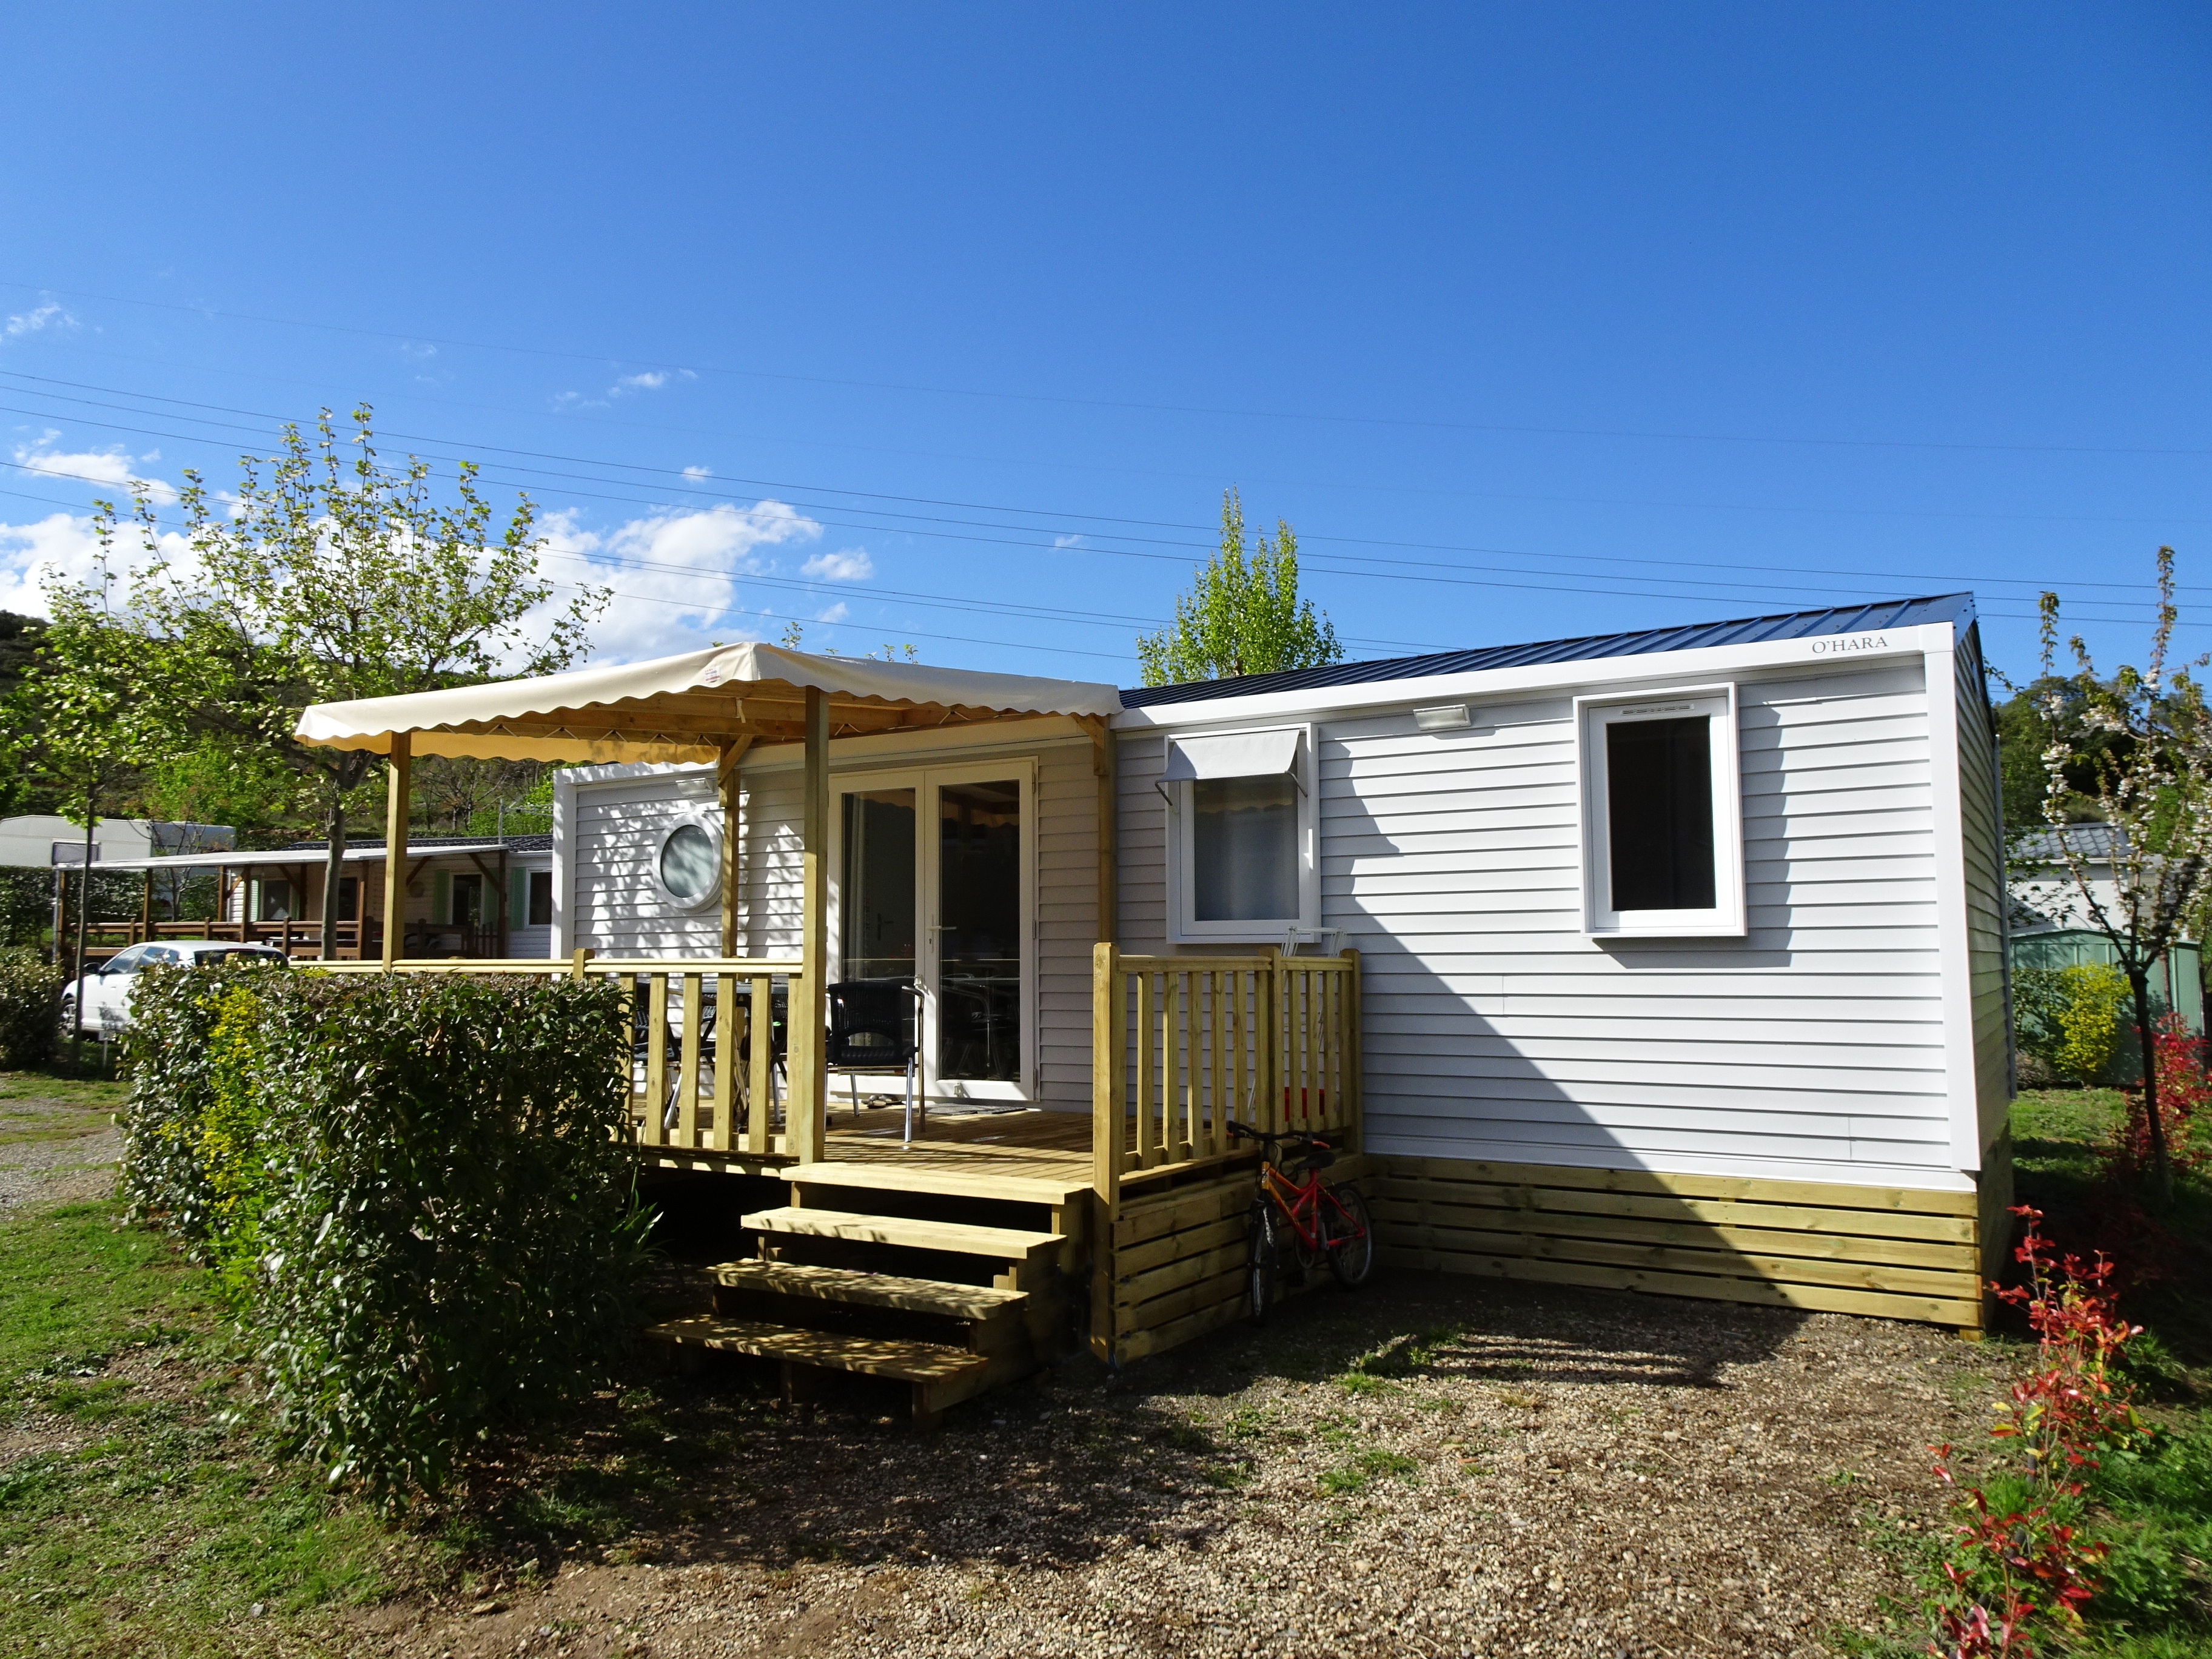 Mobilhome a vendre camping sud france